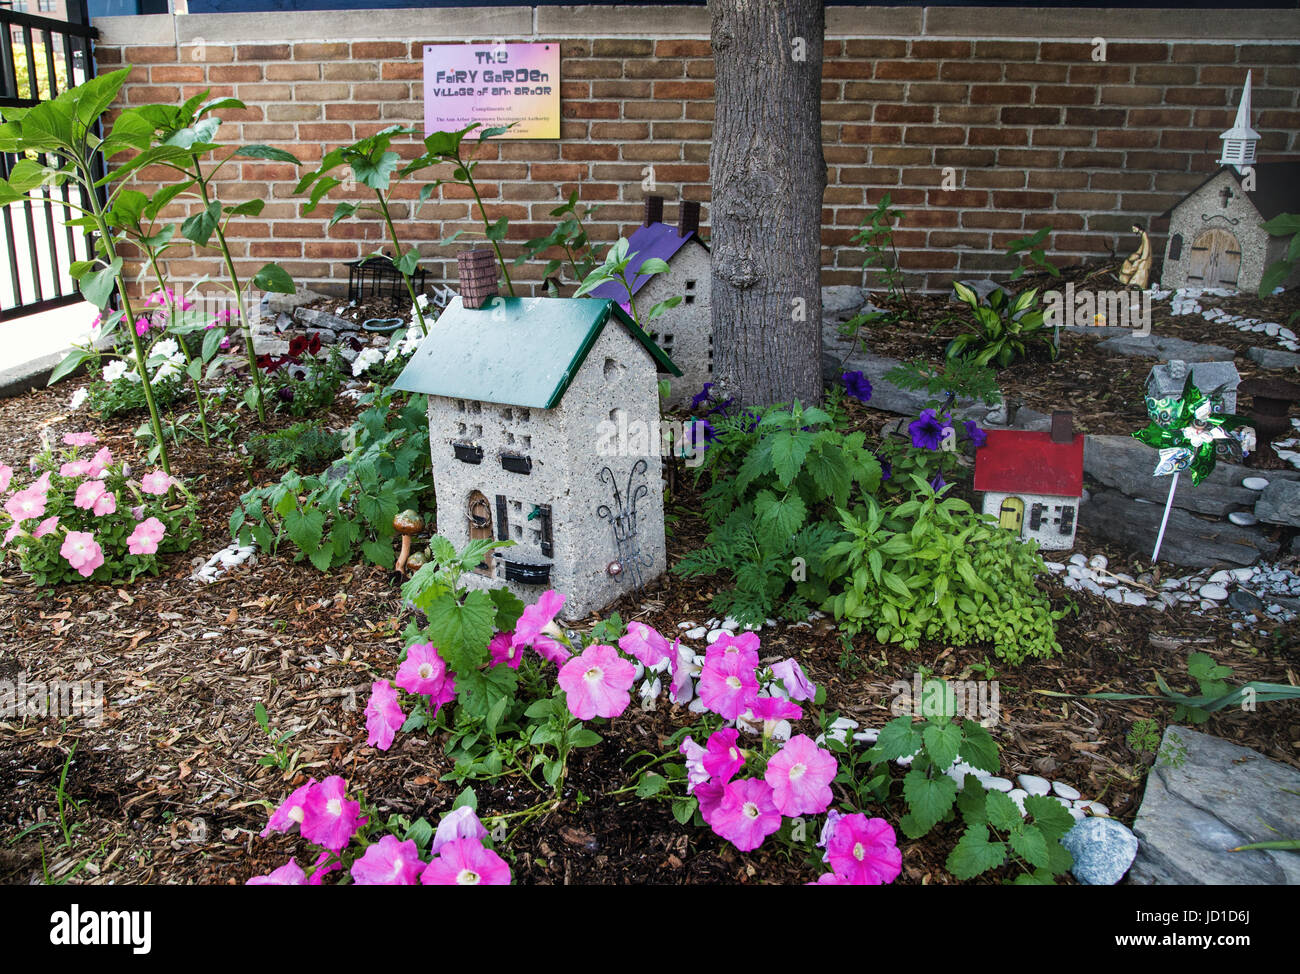 The town of Ann Arbor created a whole fairy village in an unused corner of a parking garage. - Stock Image